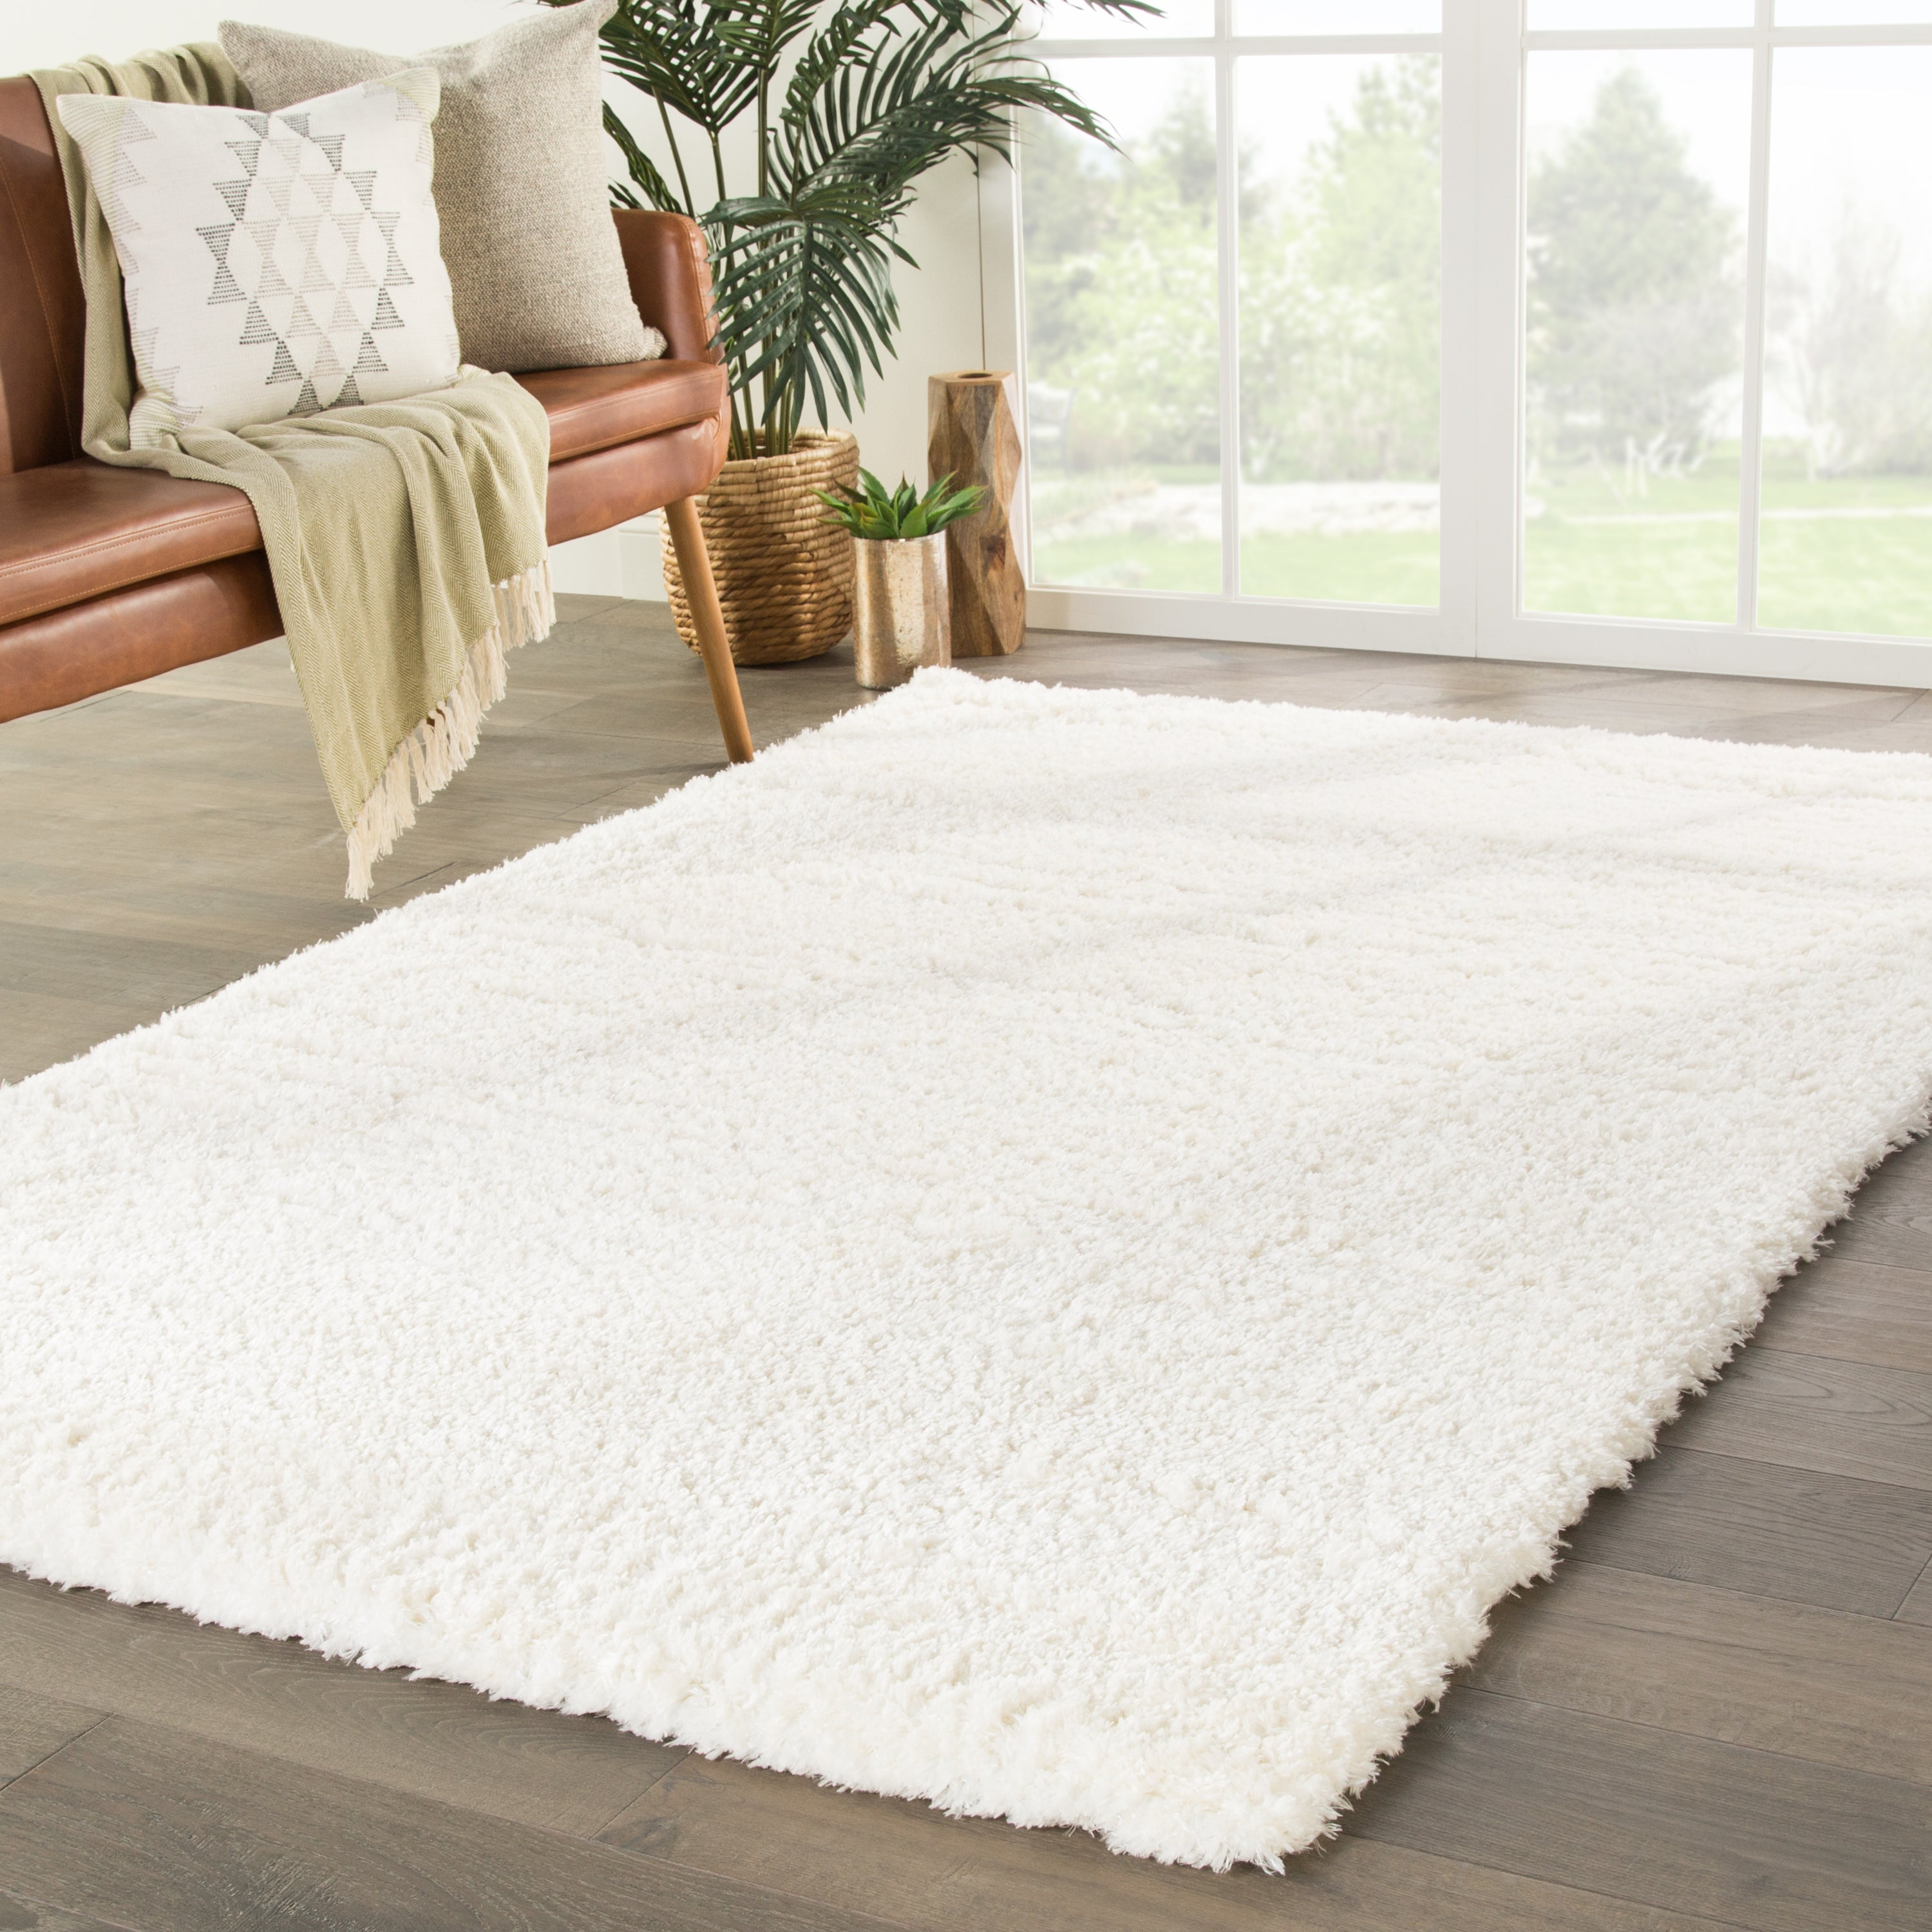 Rectangle White Solid Shag Synthetics Shag recommended for Bedroom, Bathroom, Dining Room, Office, Hallway, Living Room